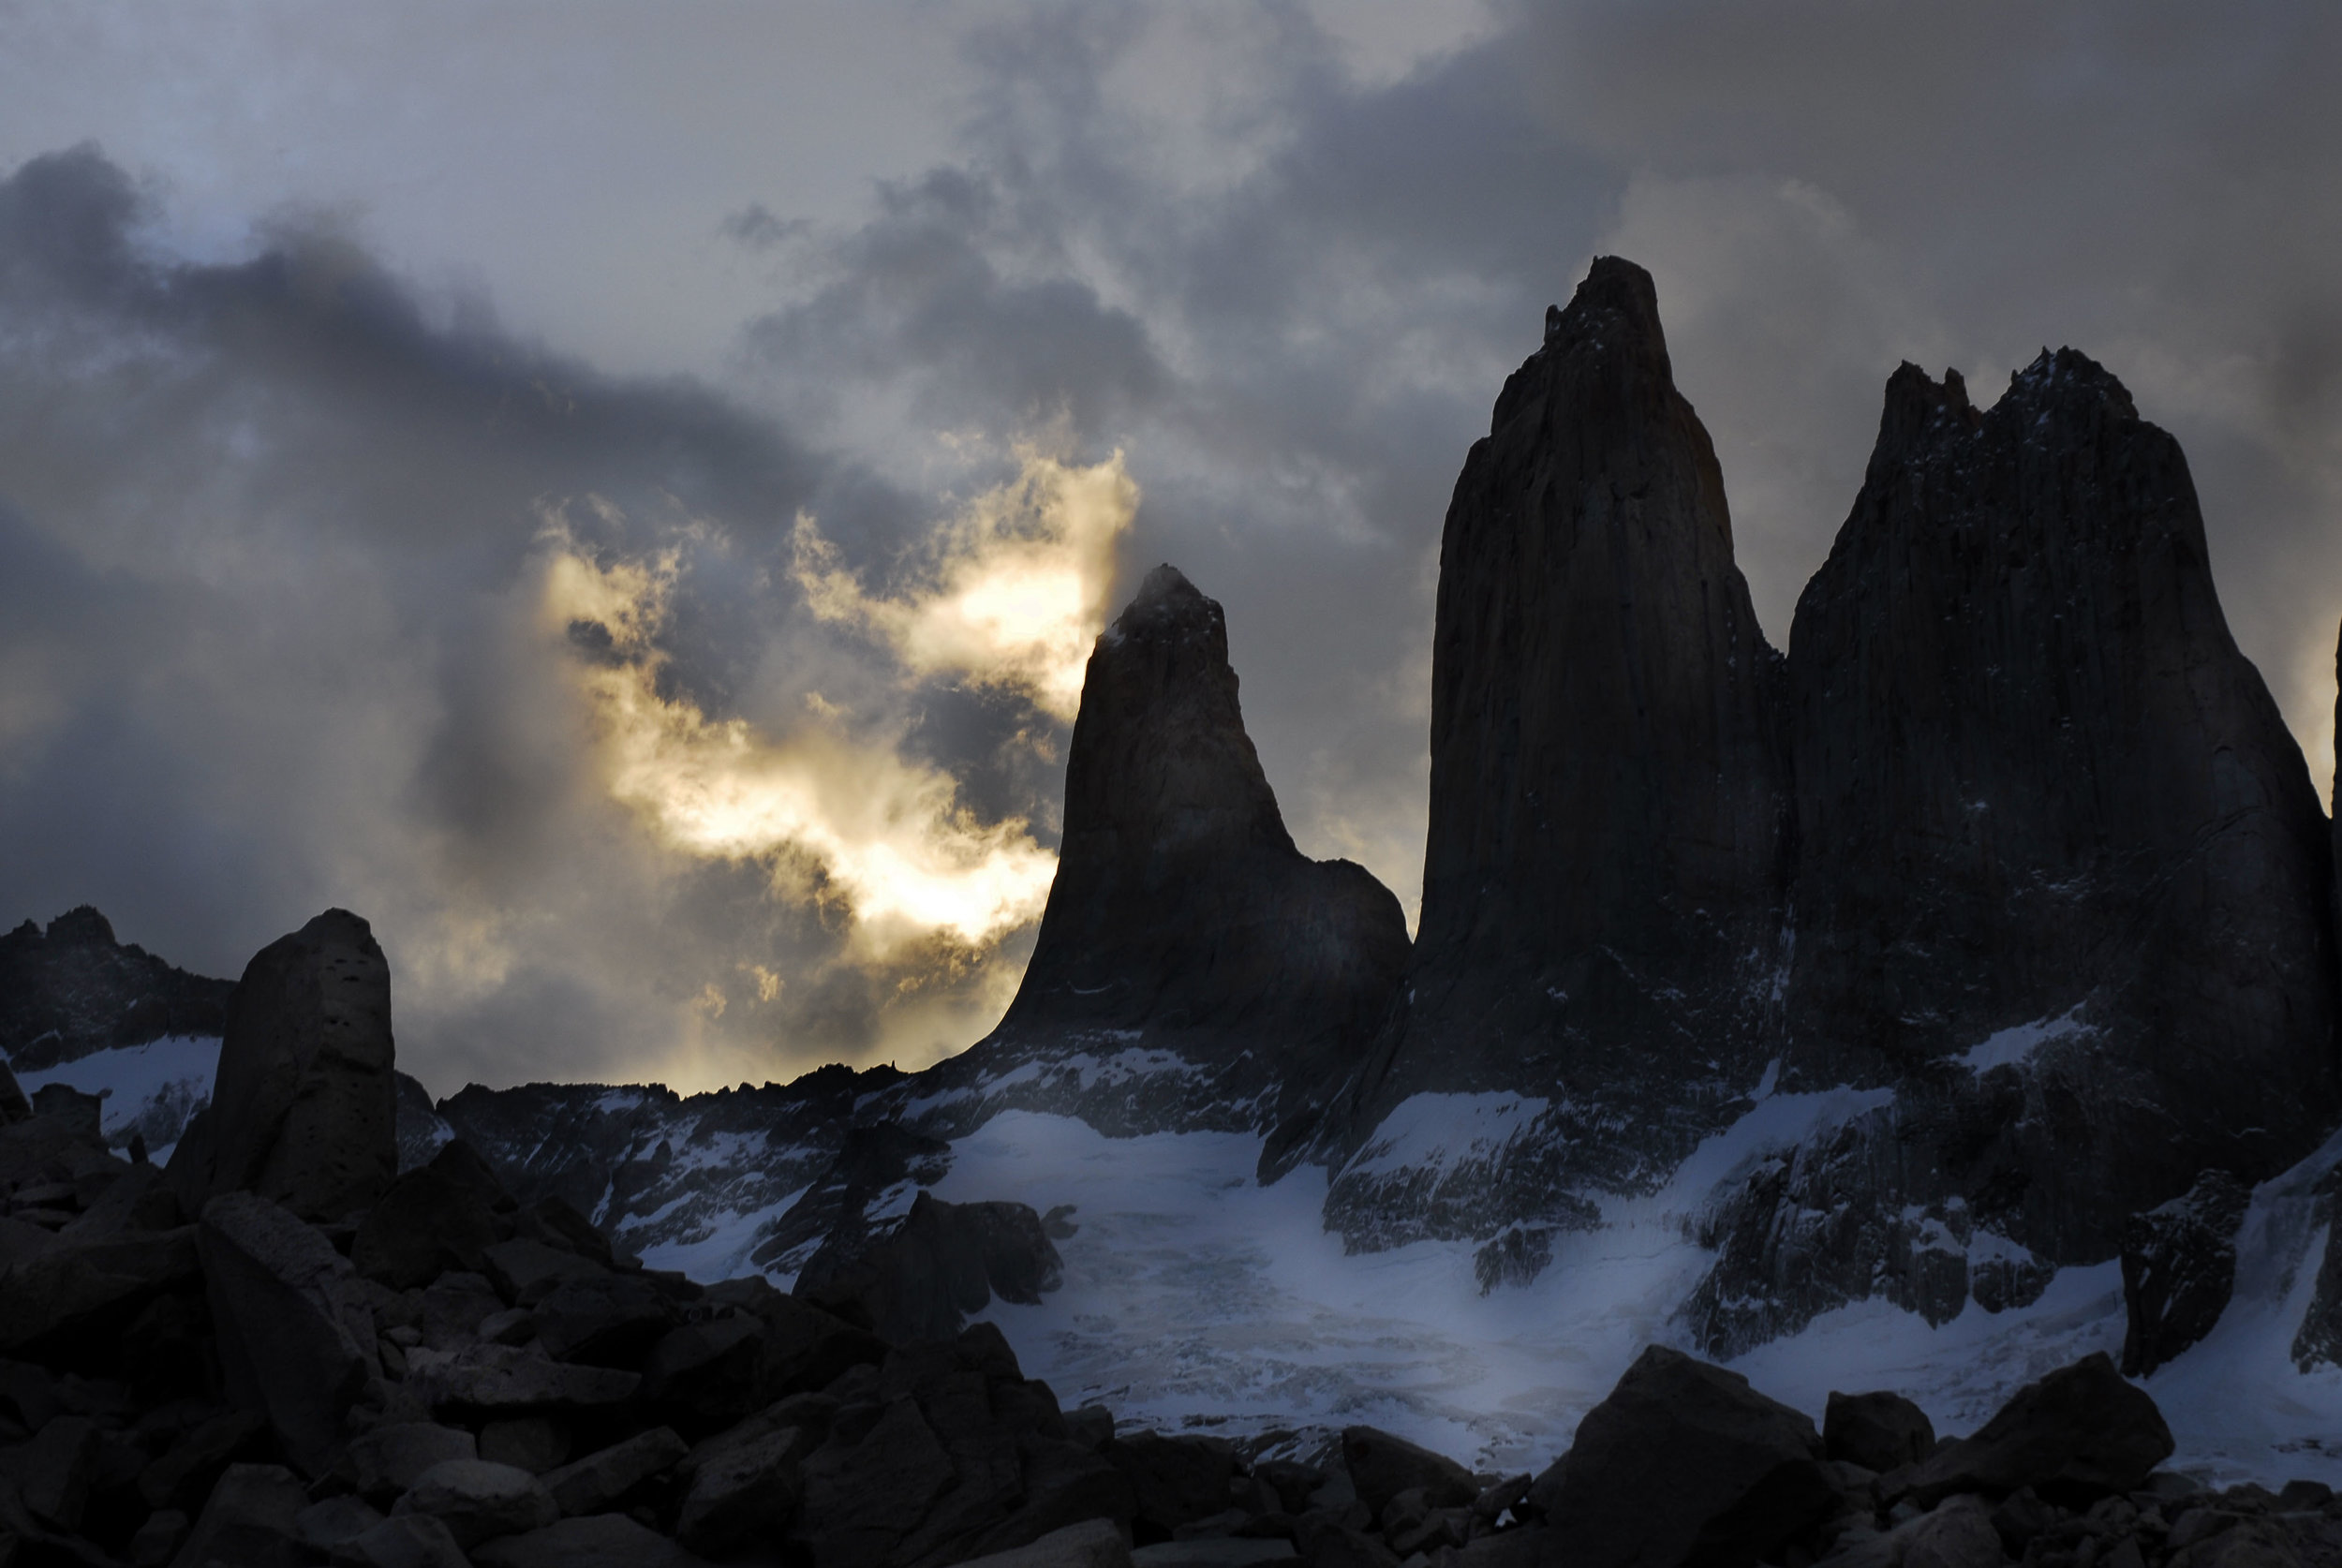 Copy of Torres del Paine | Torres del Paine National Park | 51°0′0″S 73°0′0″W